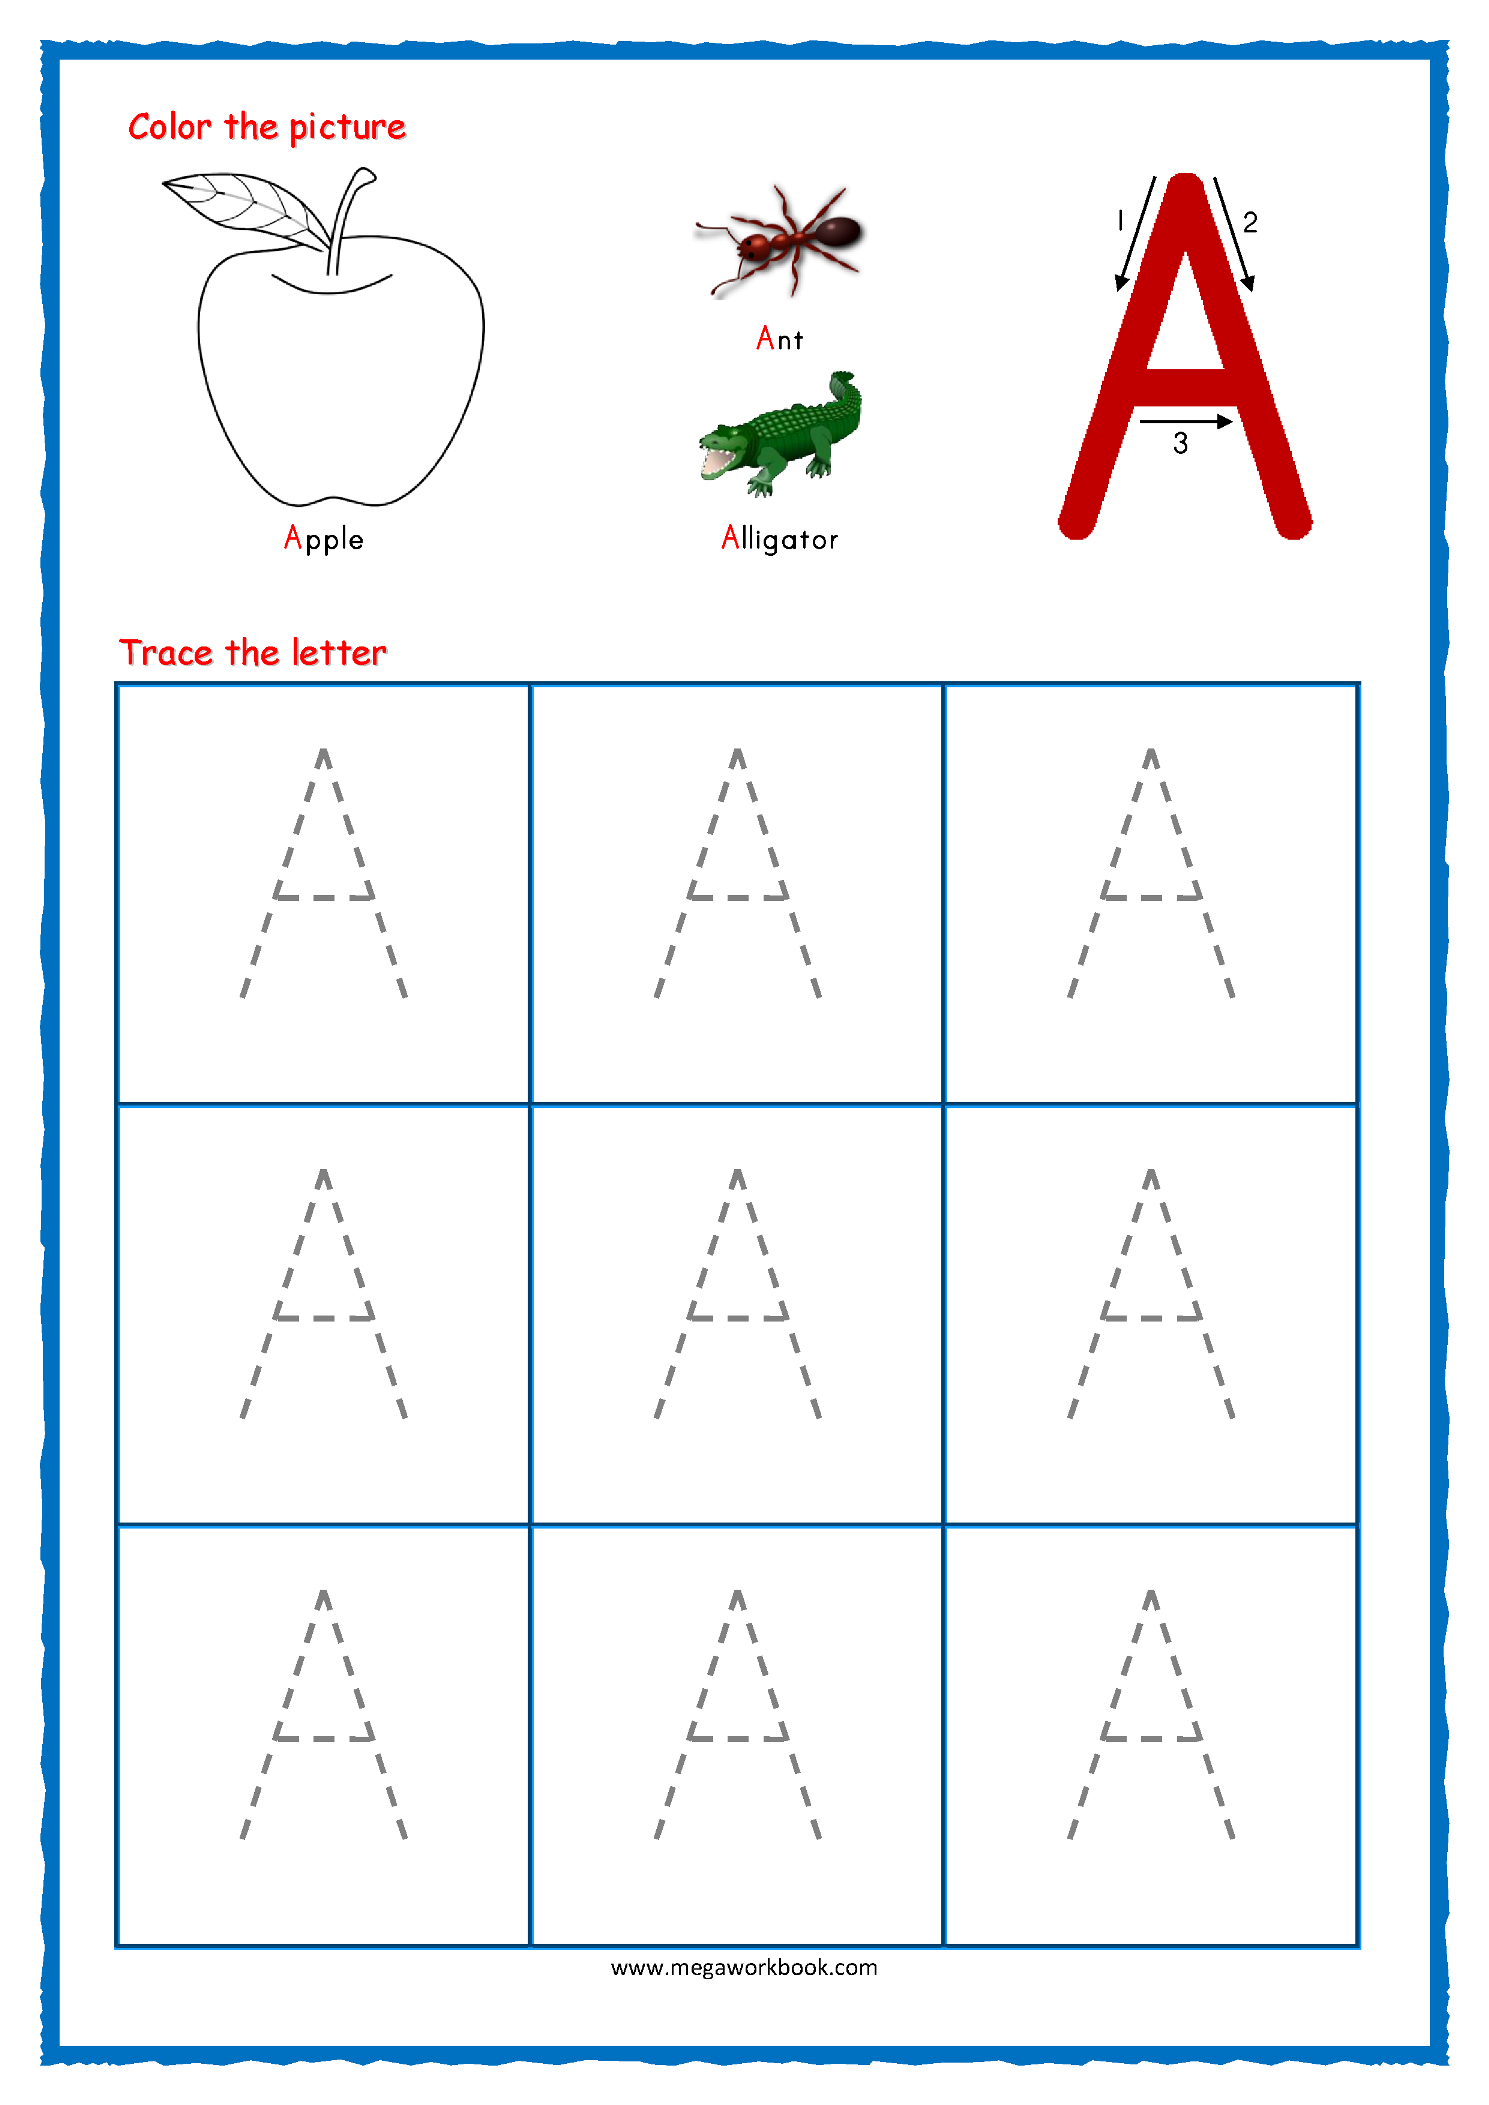 Tracing Letters - Alphabet Tracing - Capital Letters throughout Abc Tracing Letters Preschool